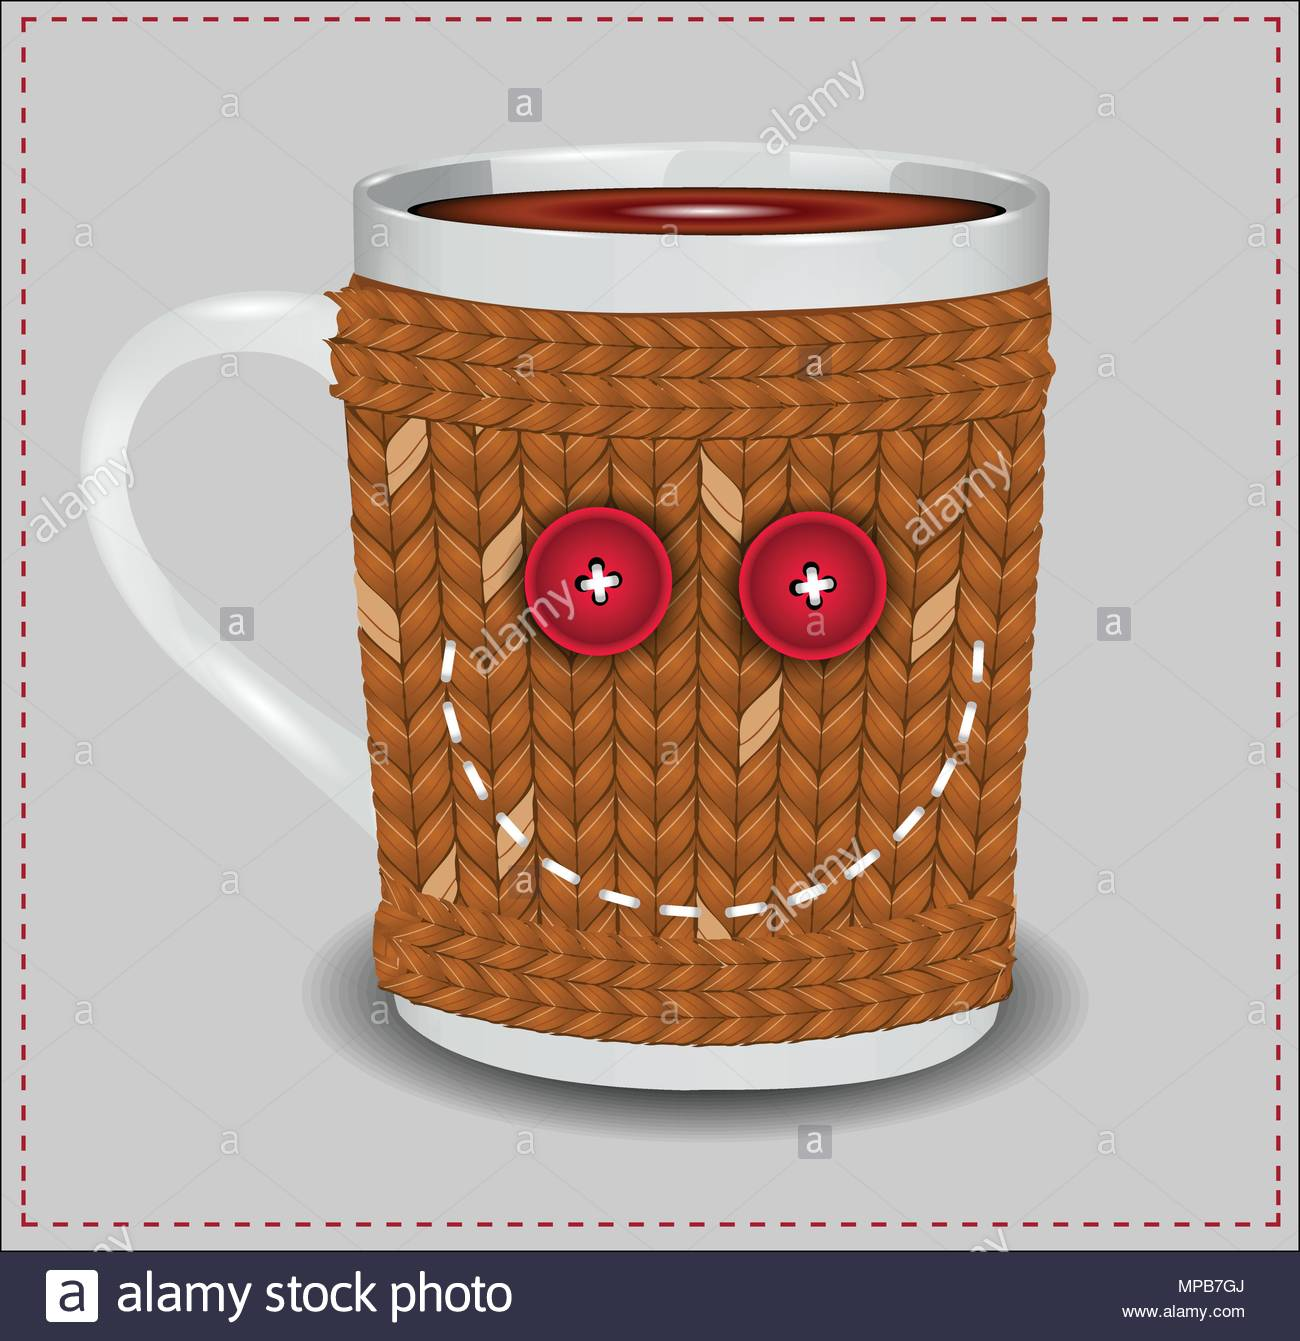 Funny cup in a sweater with buttons and thread embroidered smile - Stock Vector